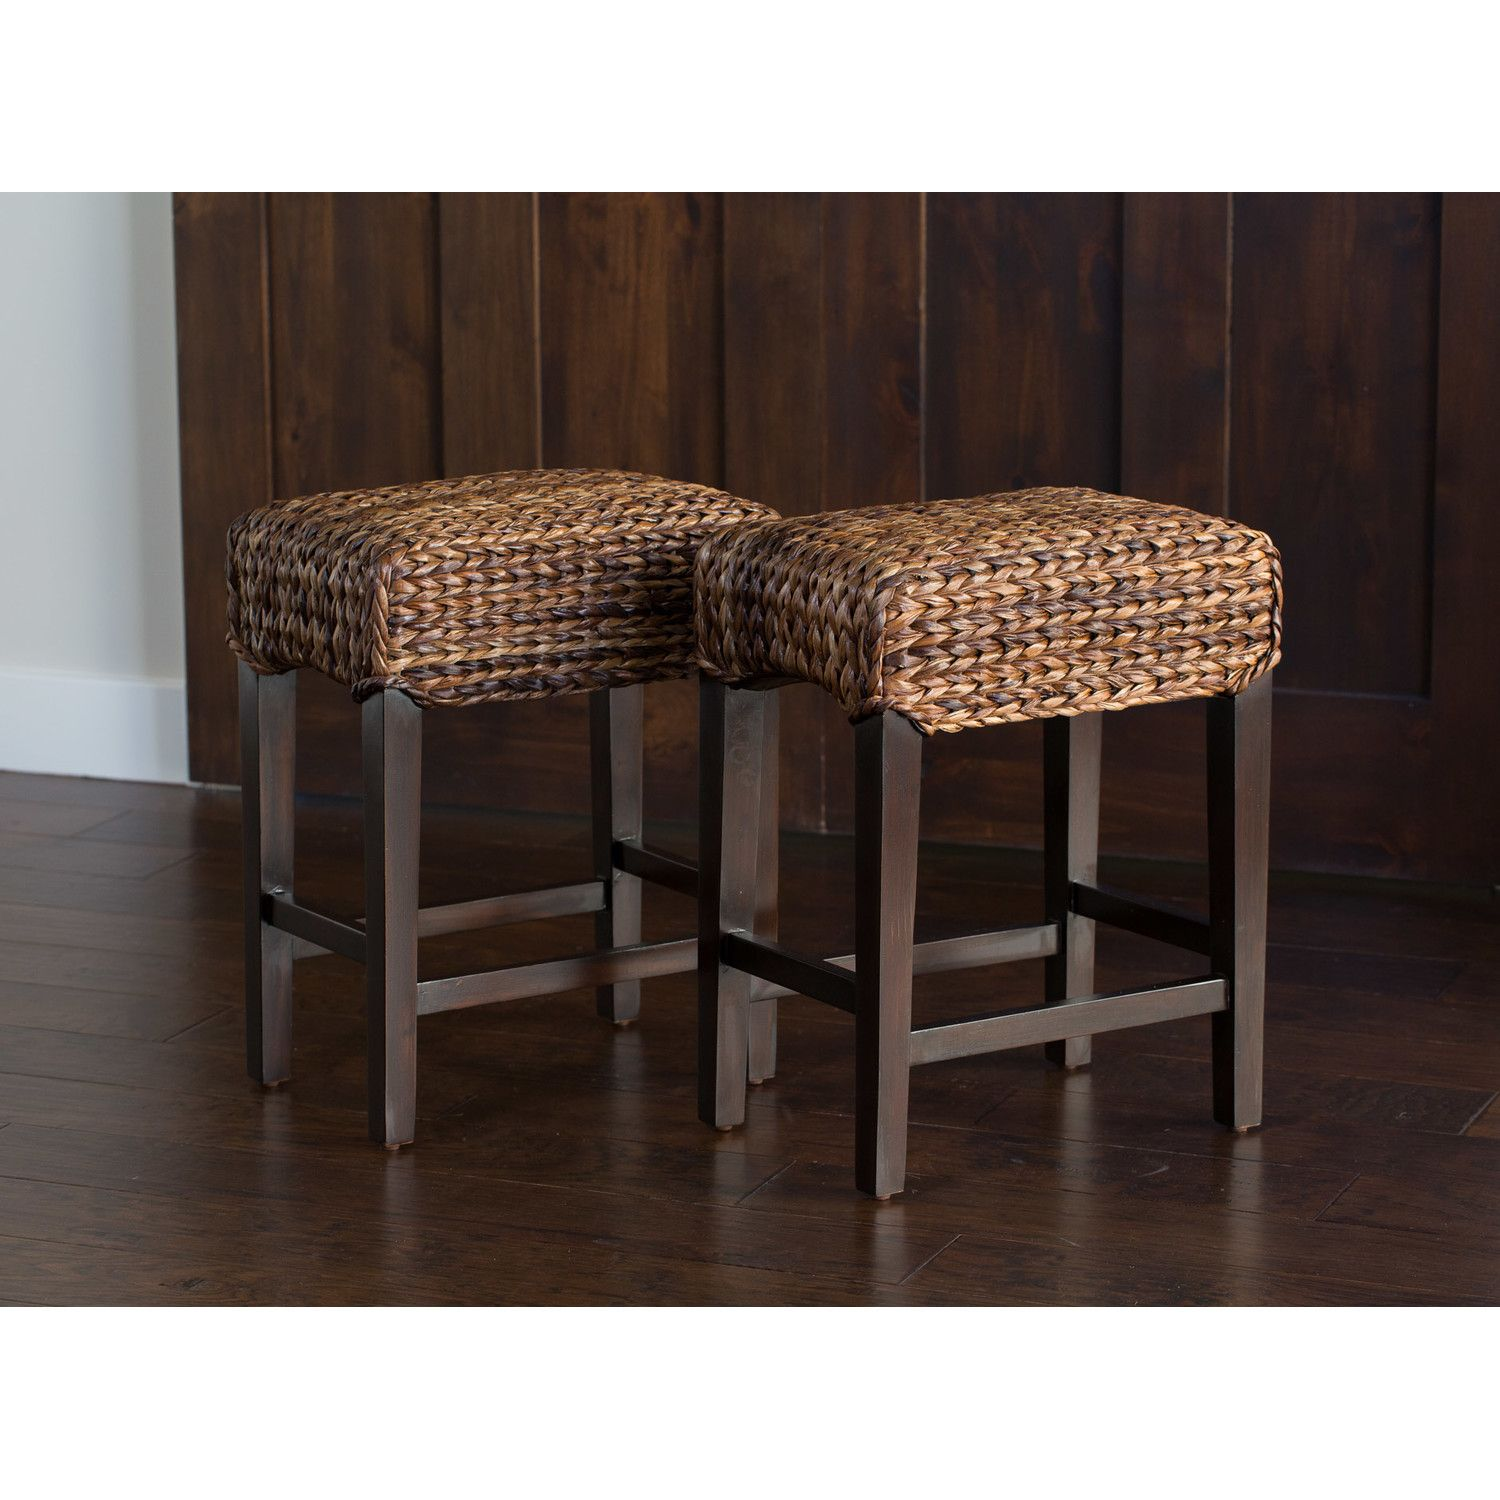 Beautiful Seagrass Bar Stools Backless